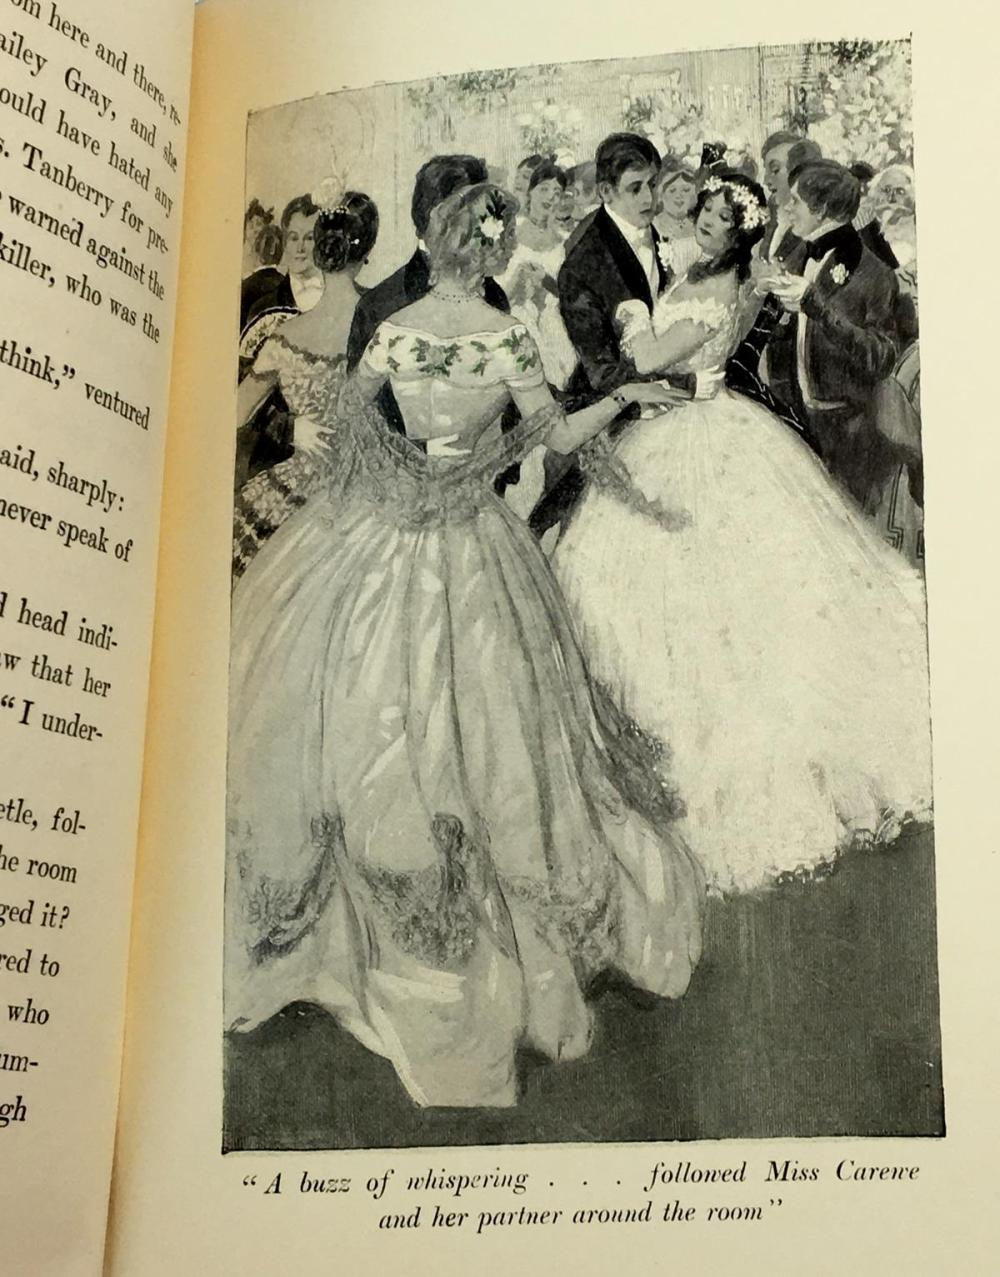 1902 The Two Vanrevels by Booth Tarkington Illustrated FIRST EDITION